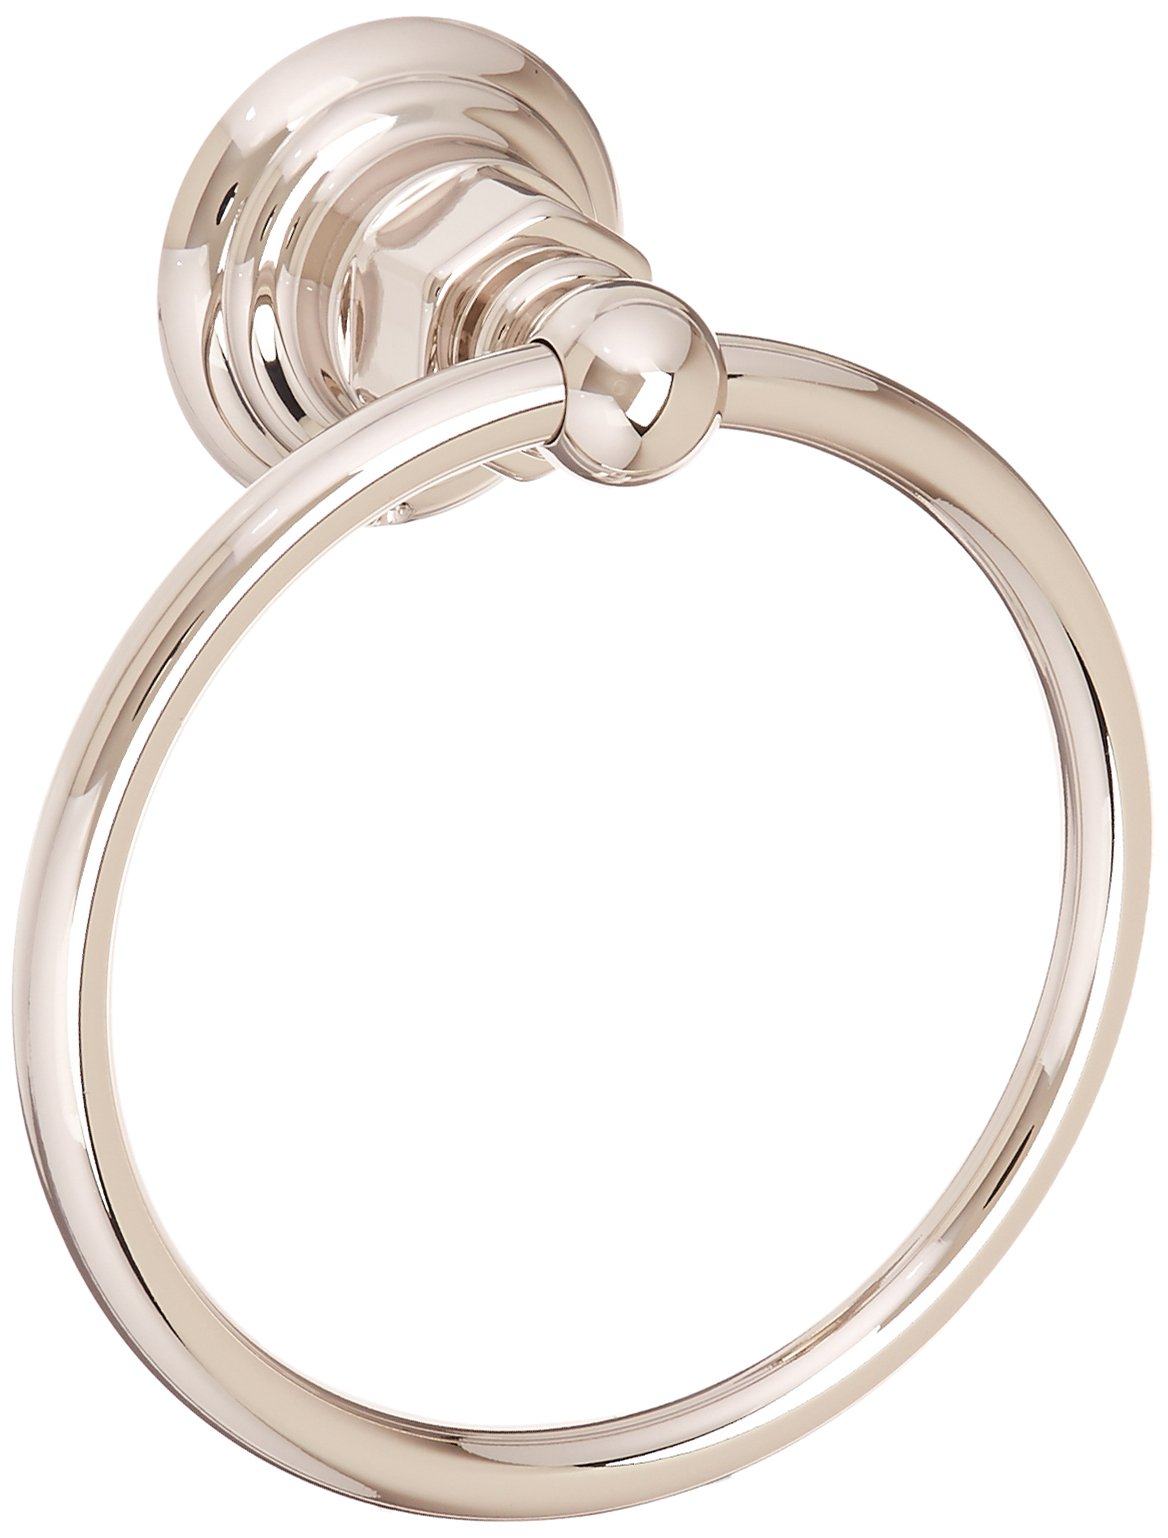 Rohl ROT4PN Country Bath Towel Ring in Polished Nickel by Rohl